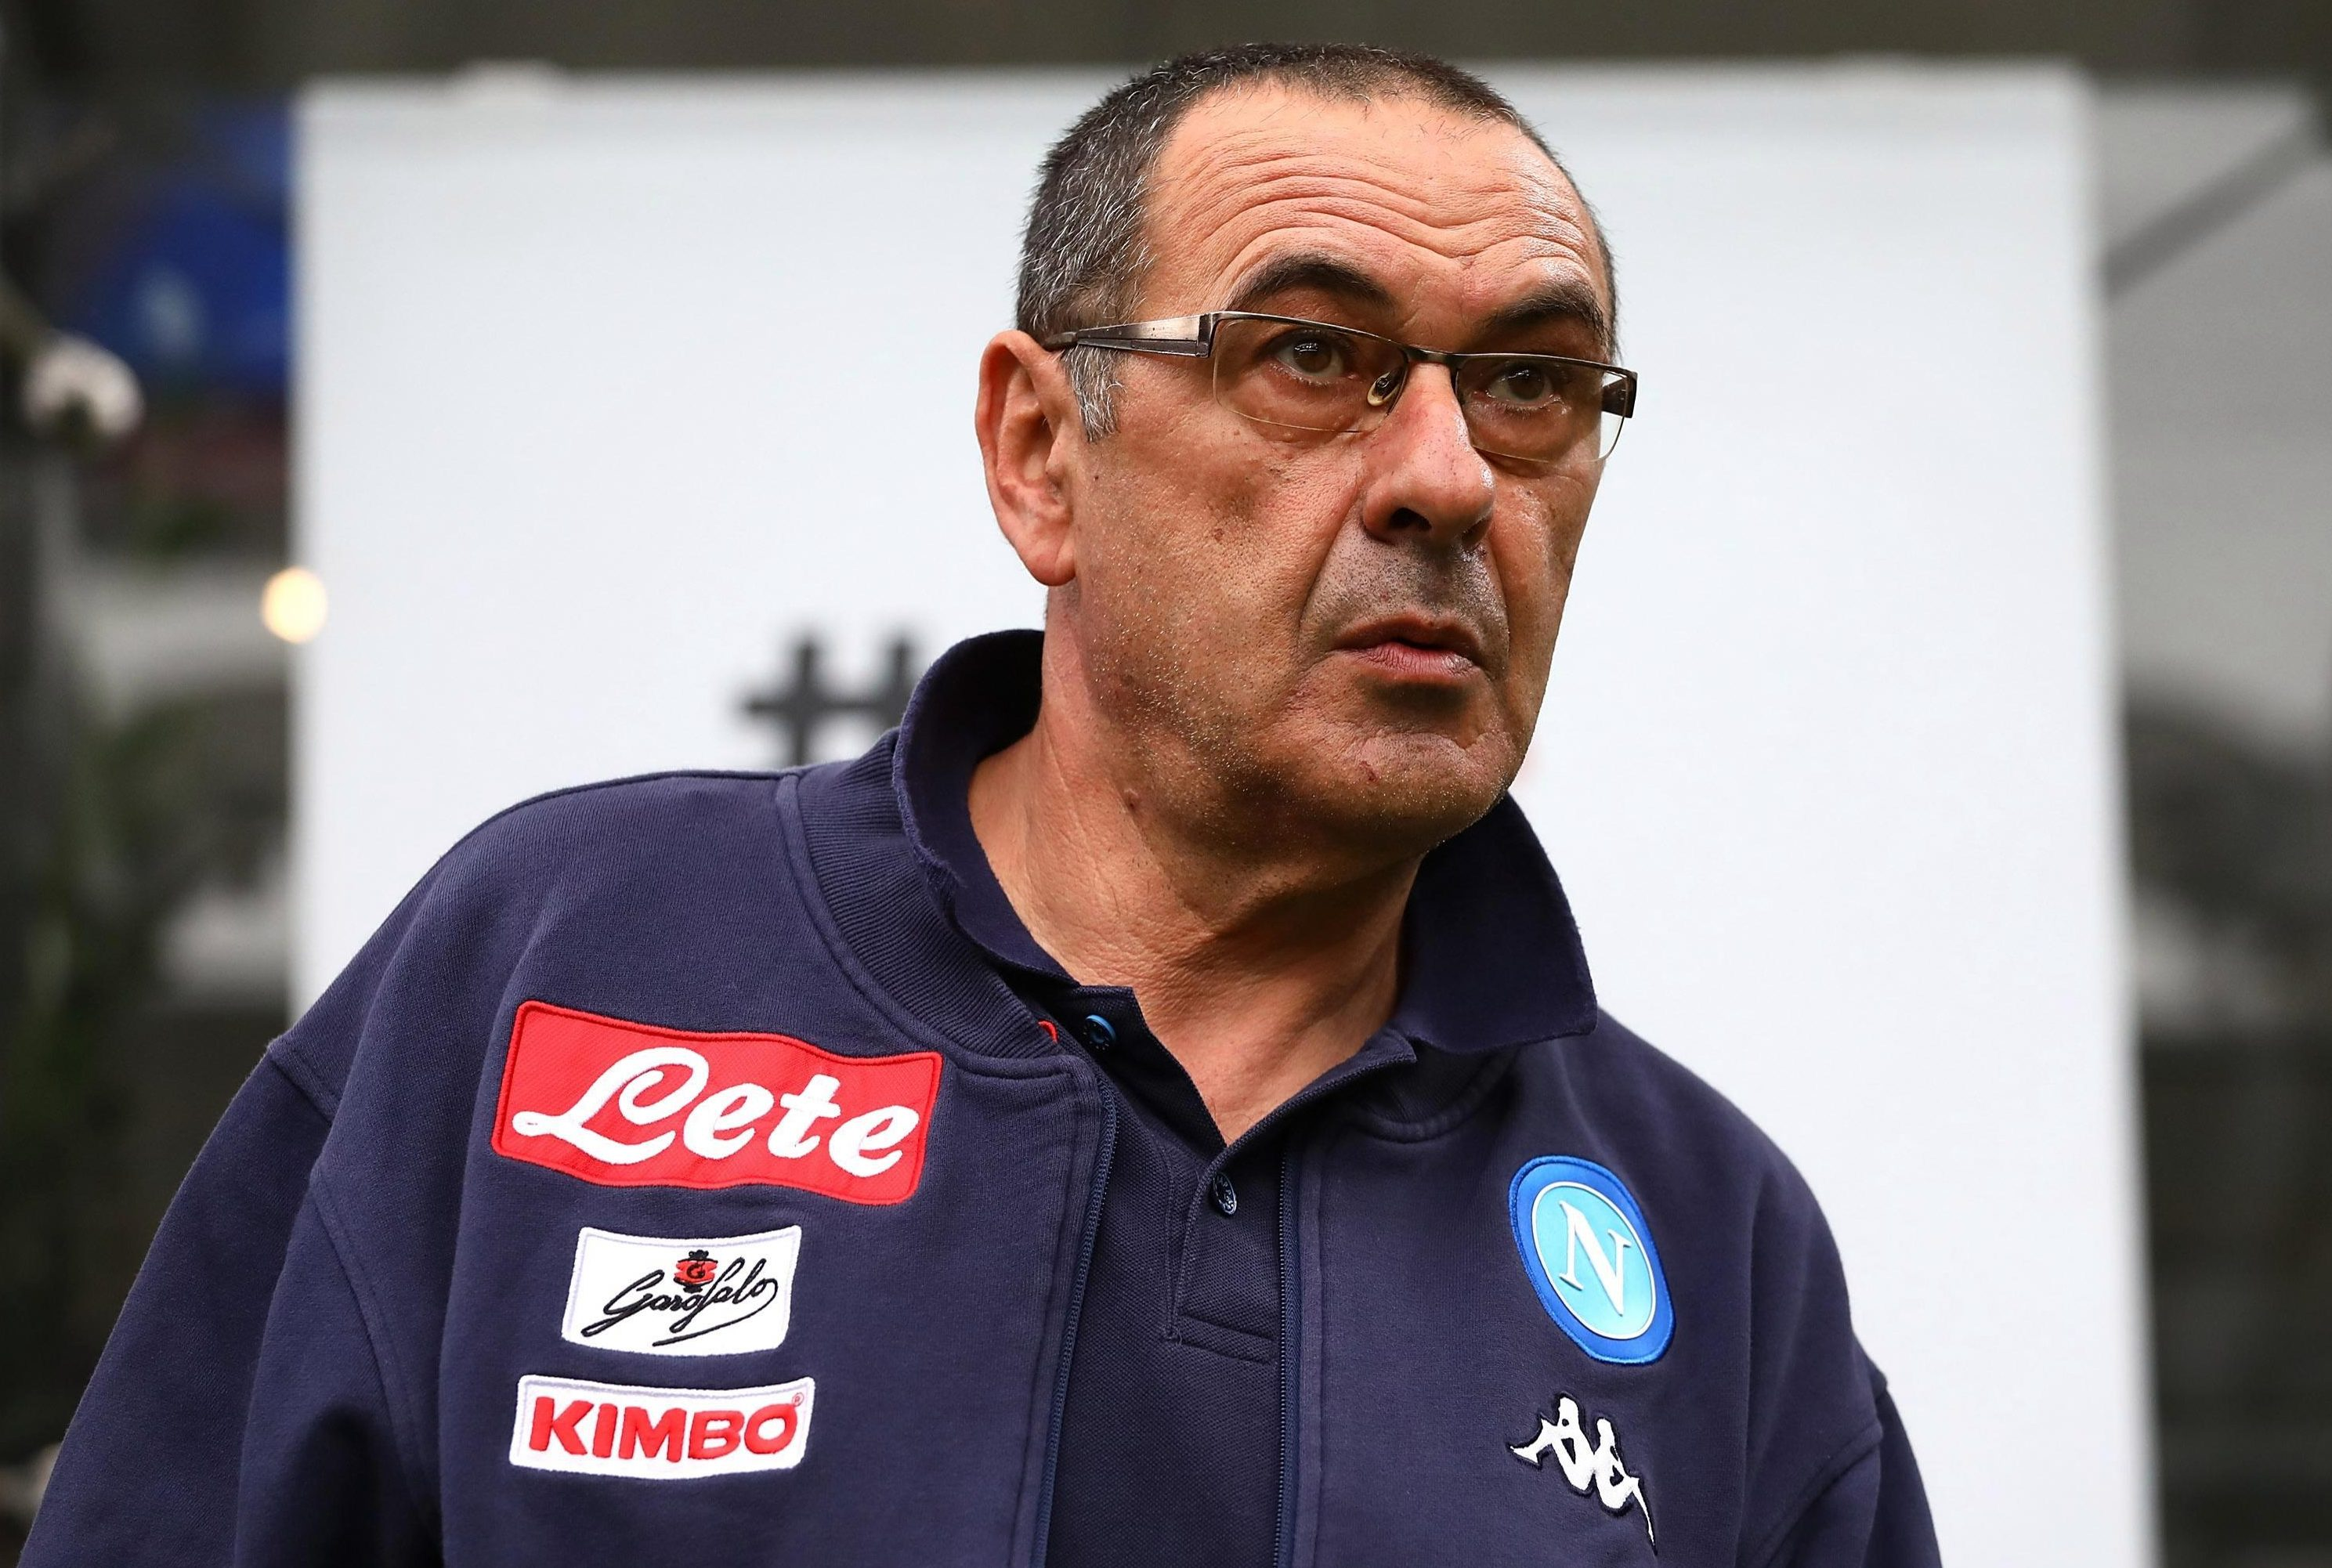 Maurizio Sarri has emerged as the main target for Chelsea this summer